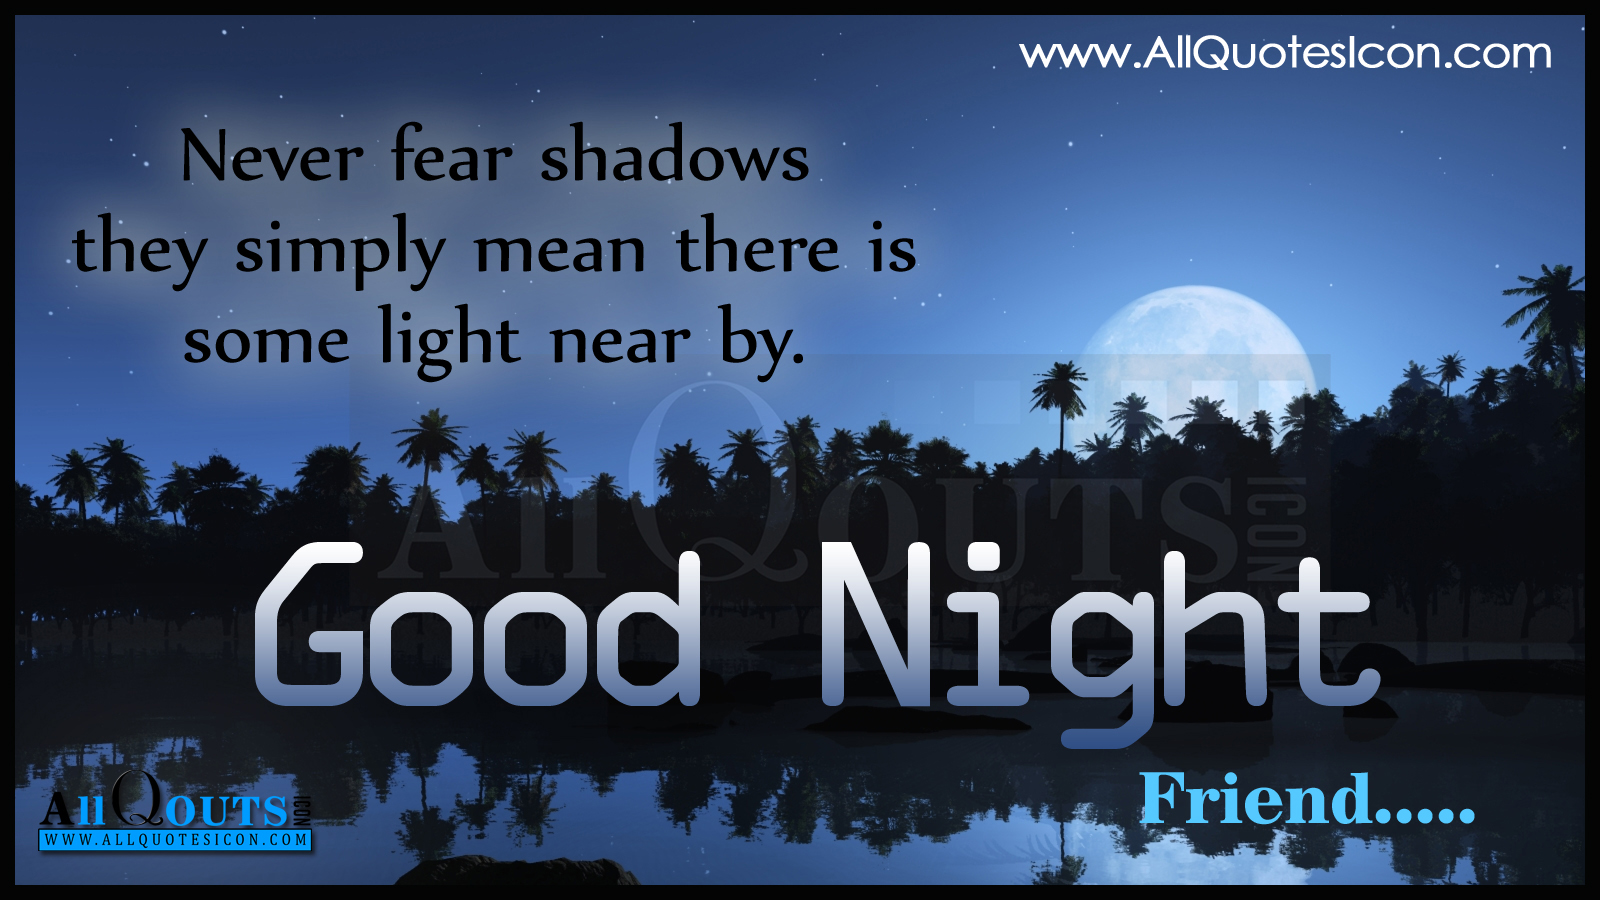 Quotes About Good Night Wishes 22 Quotes